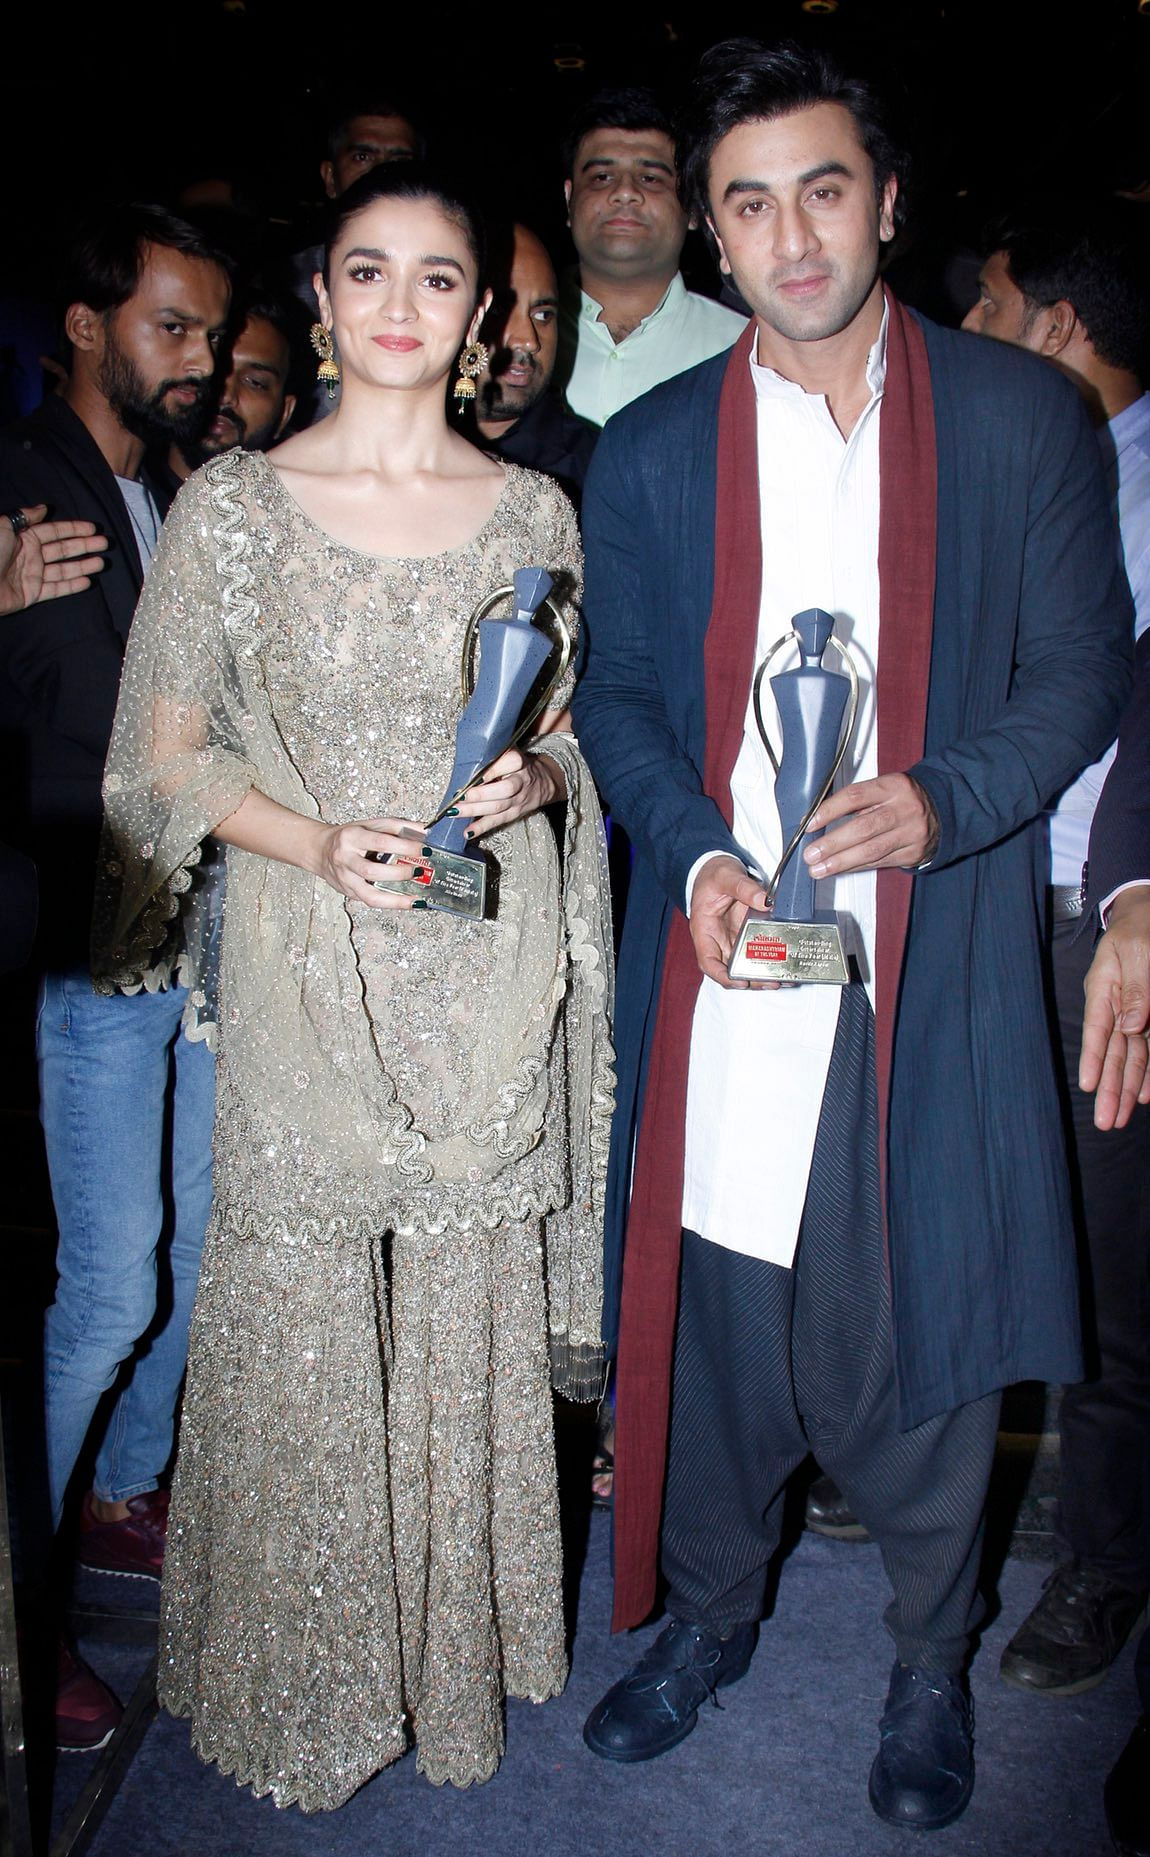 Alia and Ranbir pose with their trophies. (Photo: Yogen Shah)